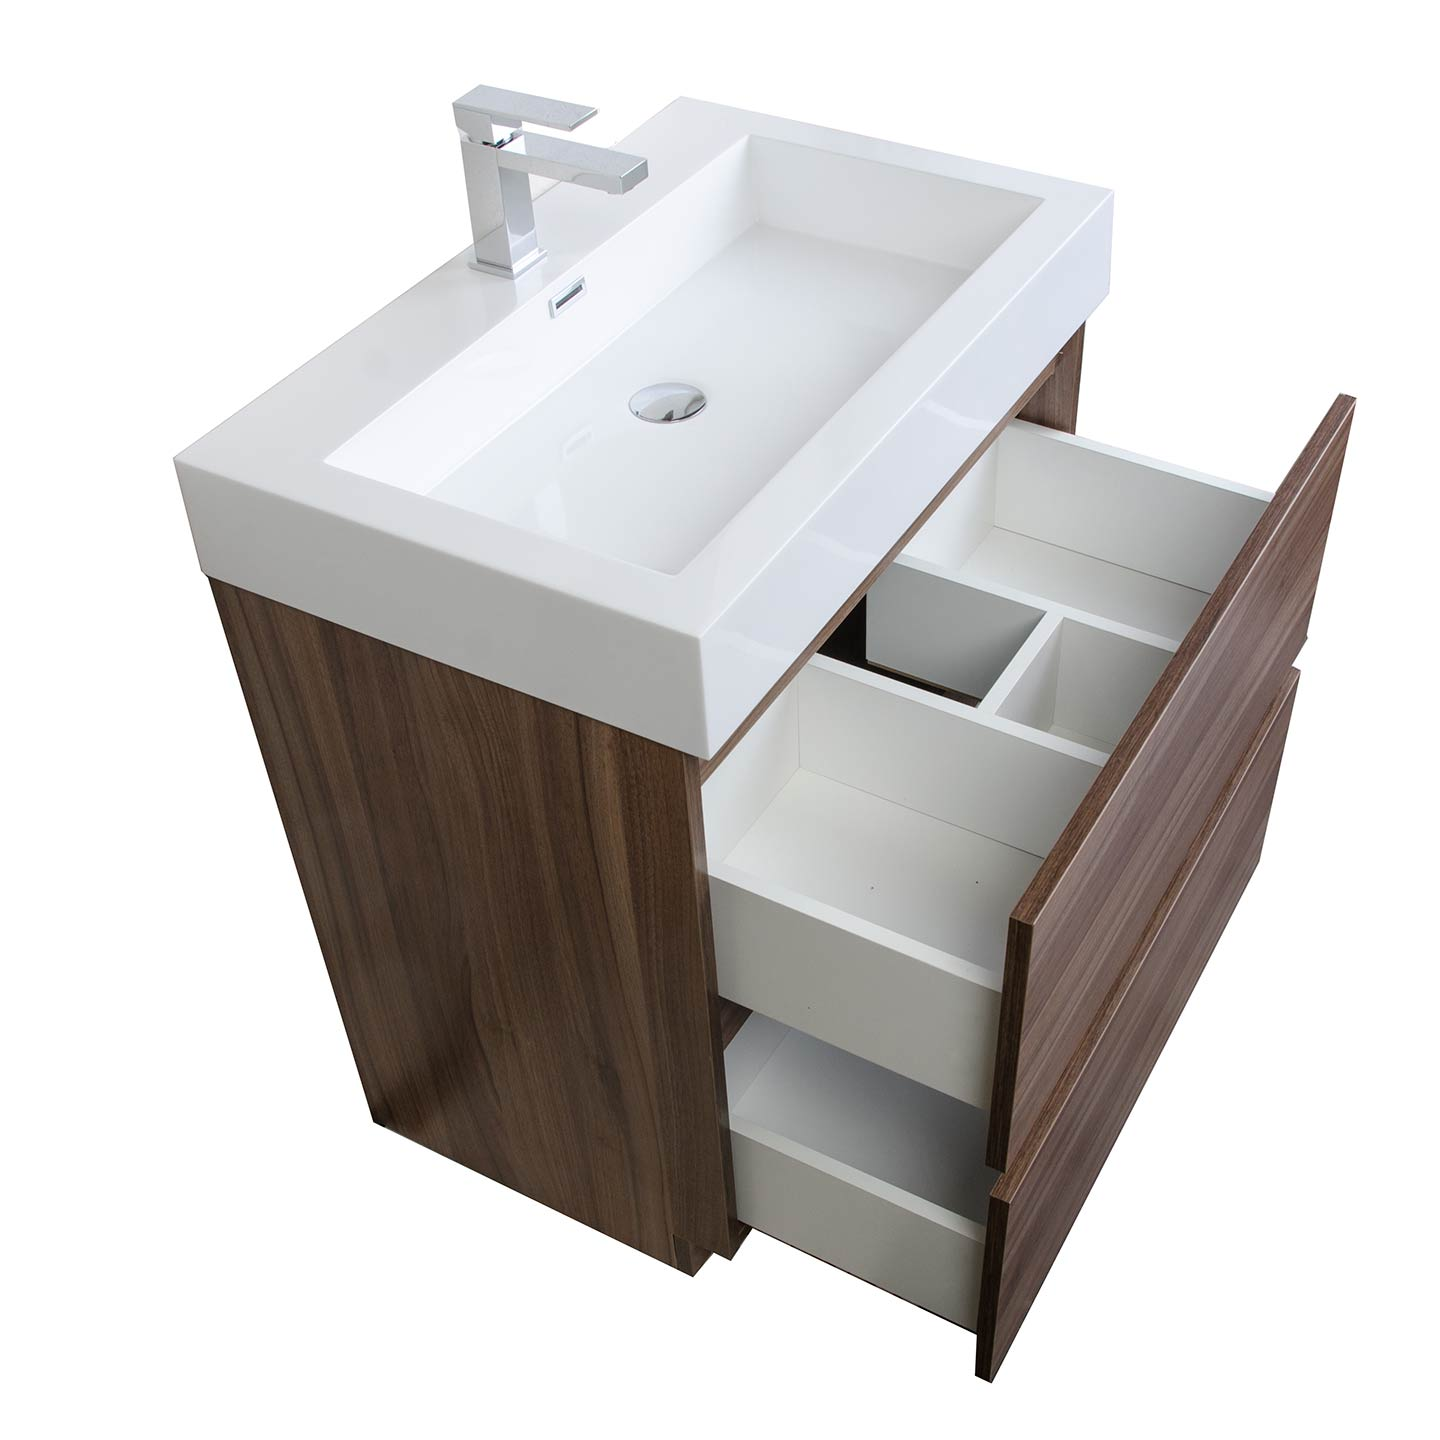 29 5 contemporary bathroom vanity set in walnut optional mirrortn